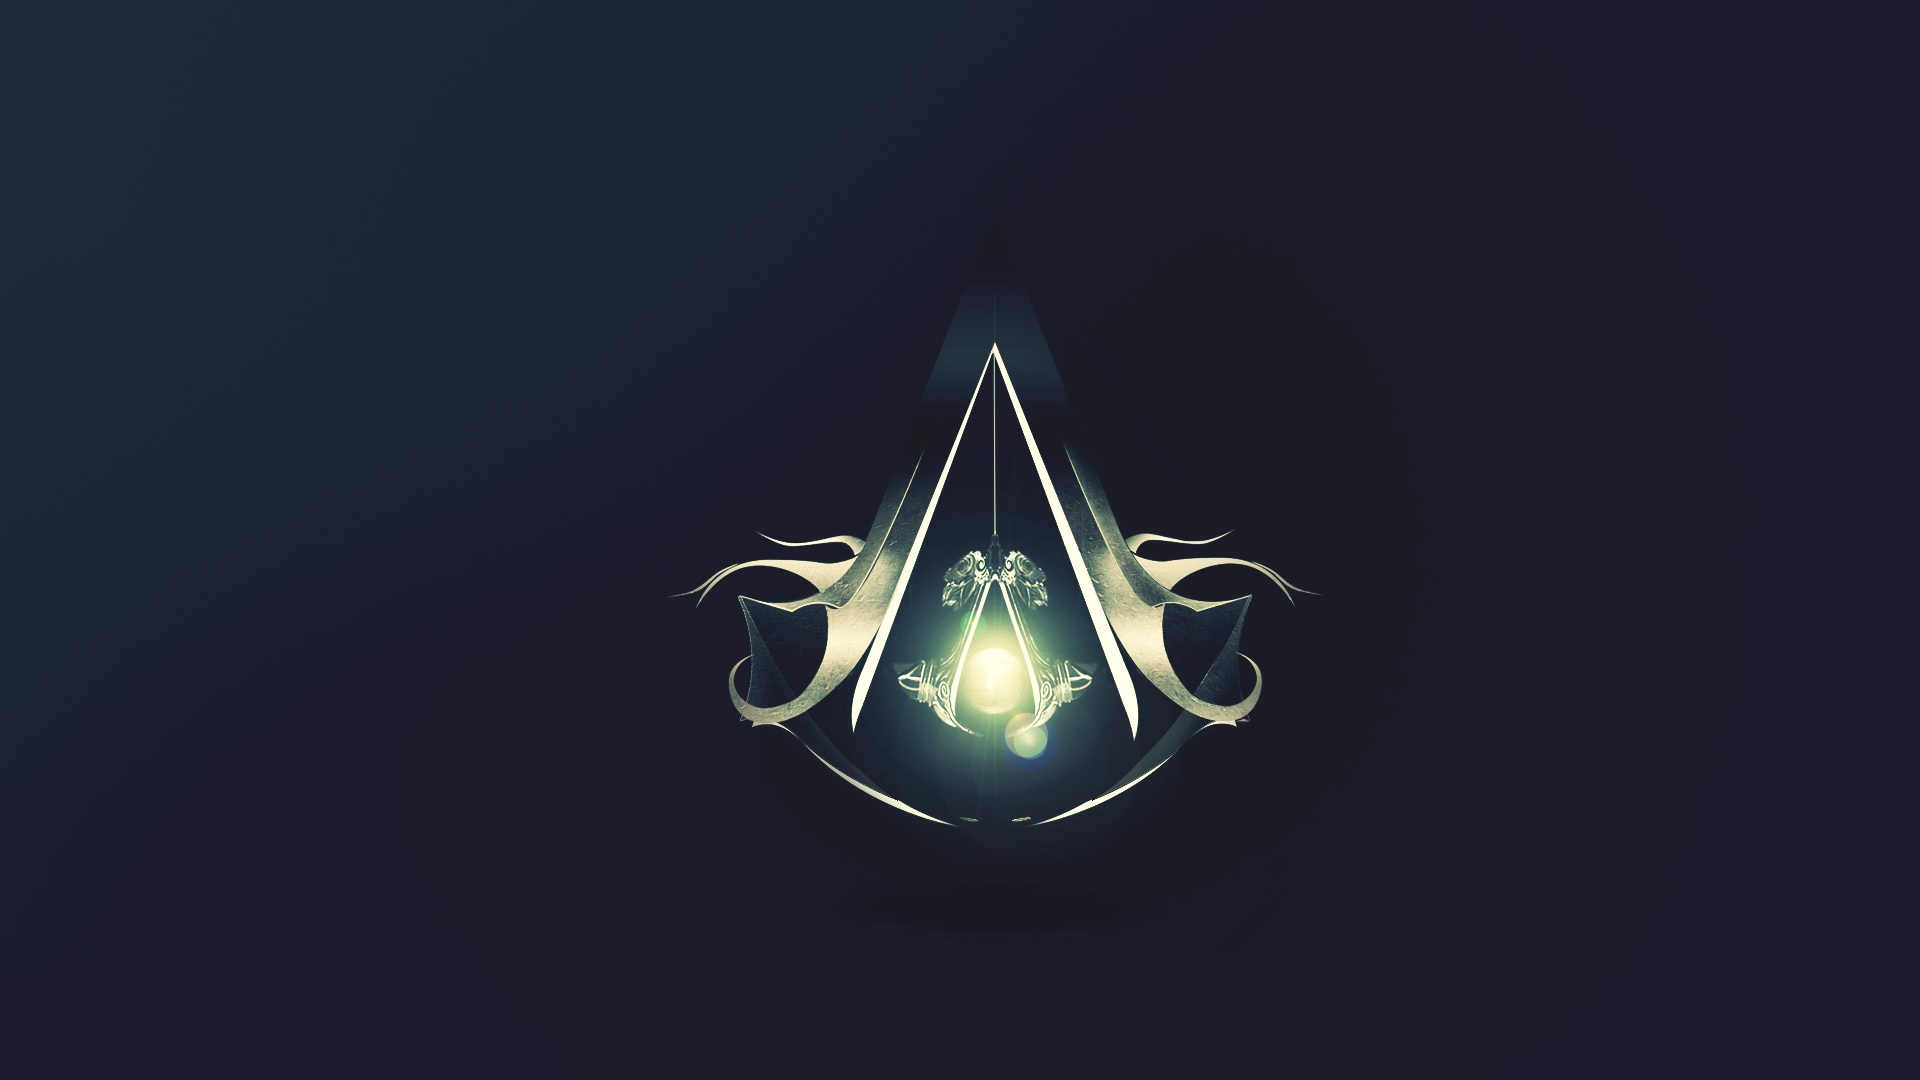 Assassins Creed logo hd wallpaper background   HD Wallpapers 1920x1080